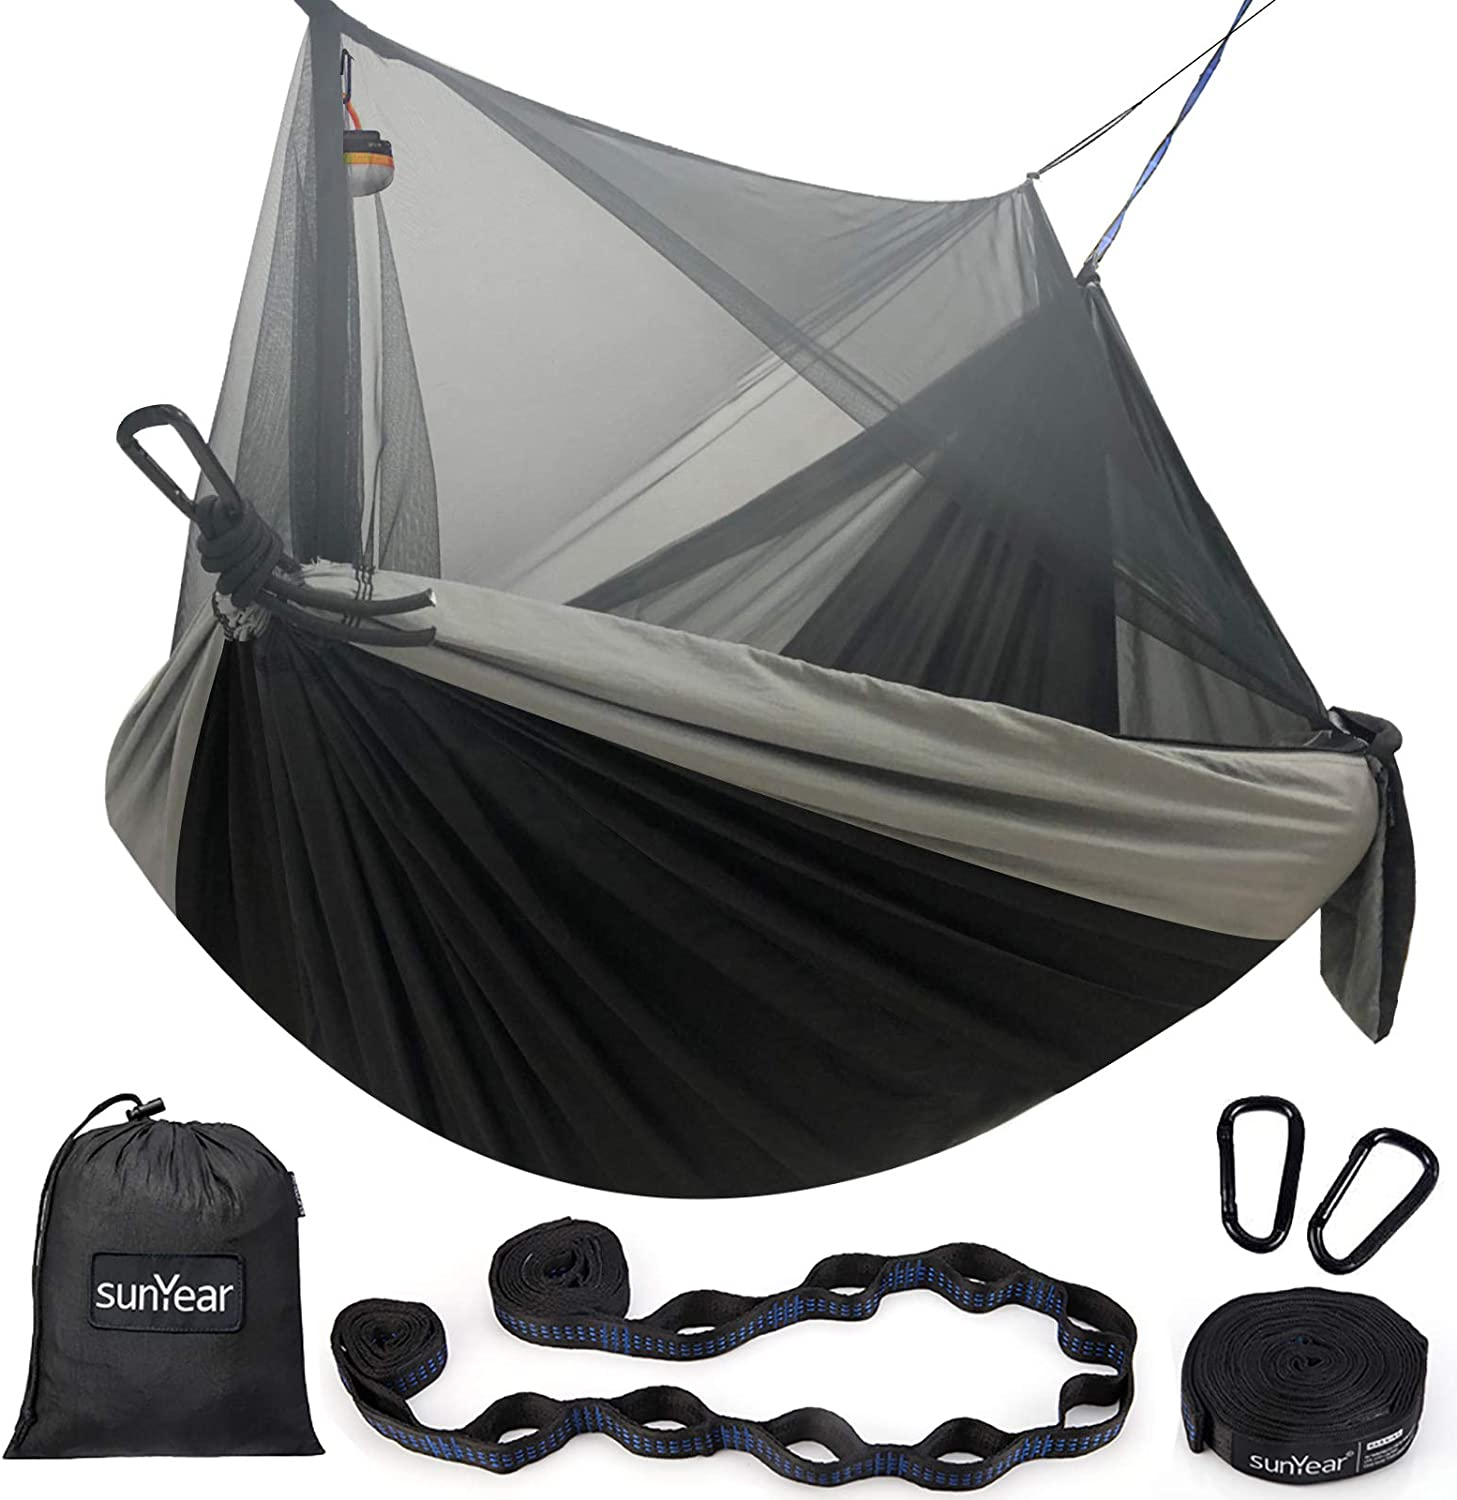 Sunyear Hammock Camping with Net//Netting /& 2 Tree Straps Portable Nylon Parachute Hammocks for Outdoor Indoor Backpacking Survival /& Travel 16+1 Loops Each,20Ft Total